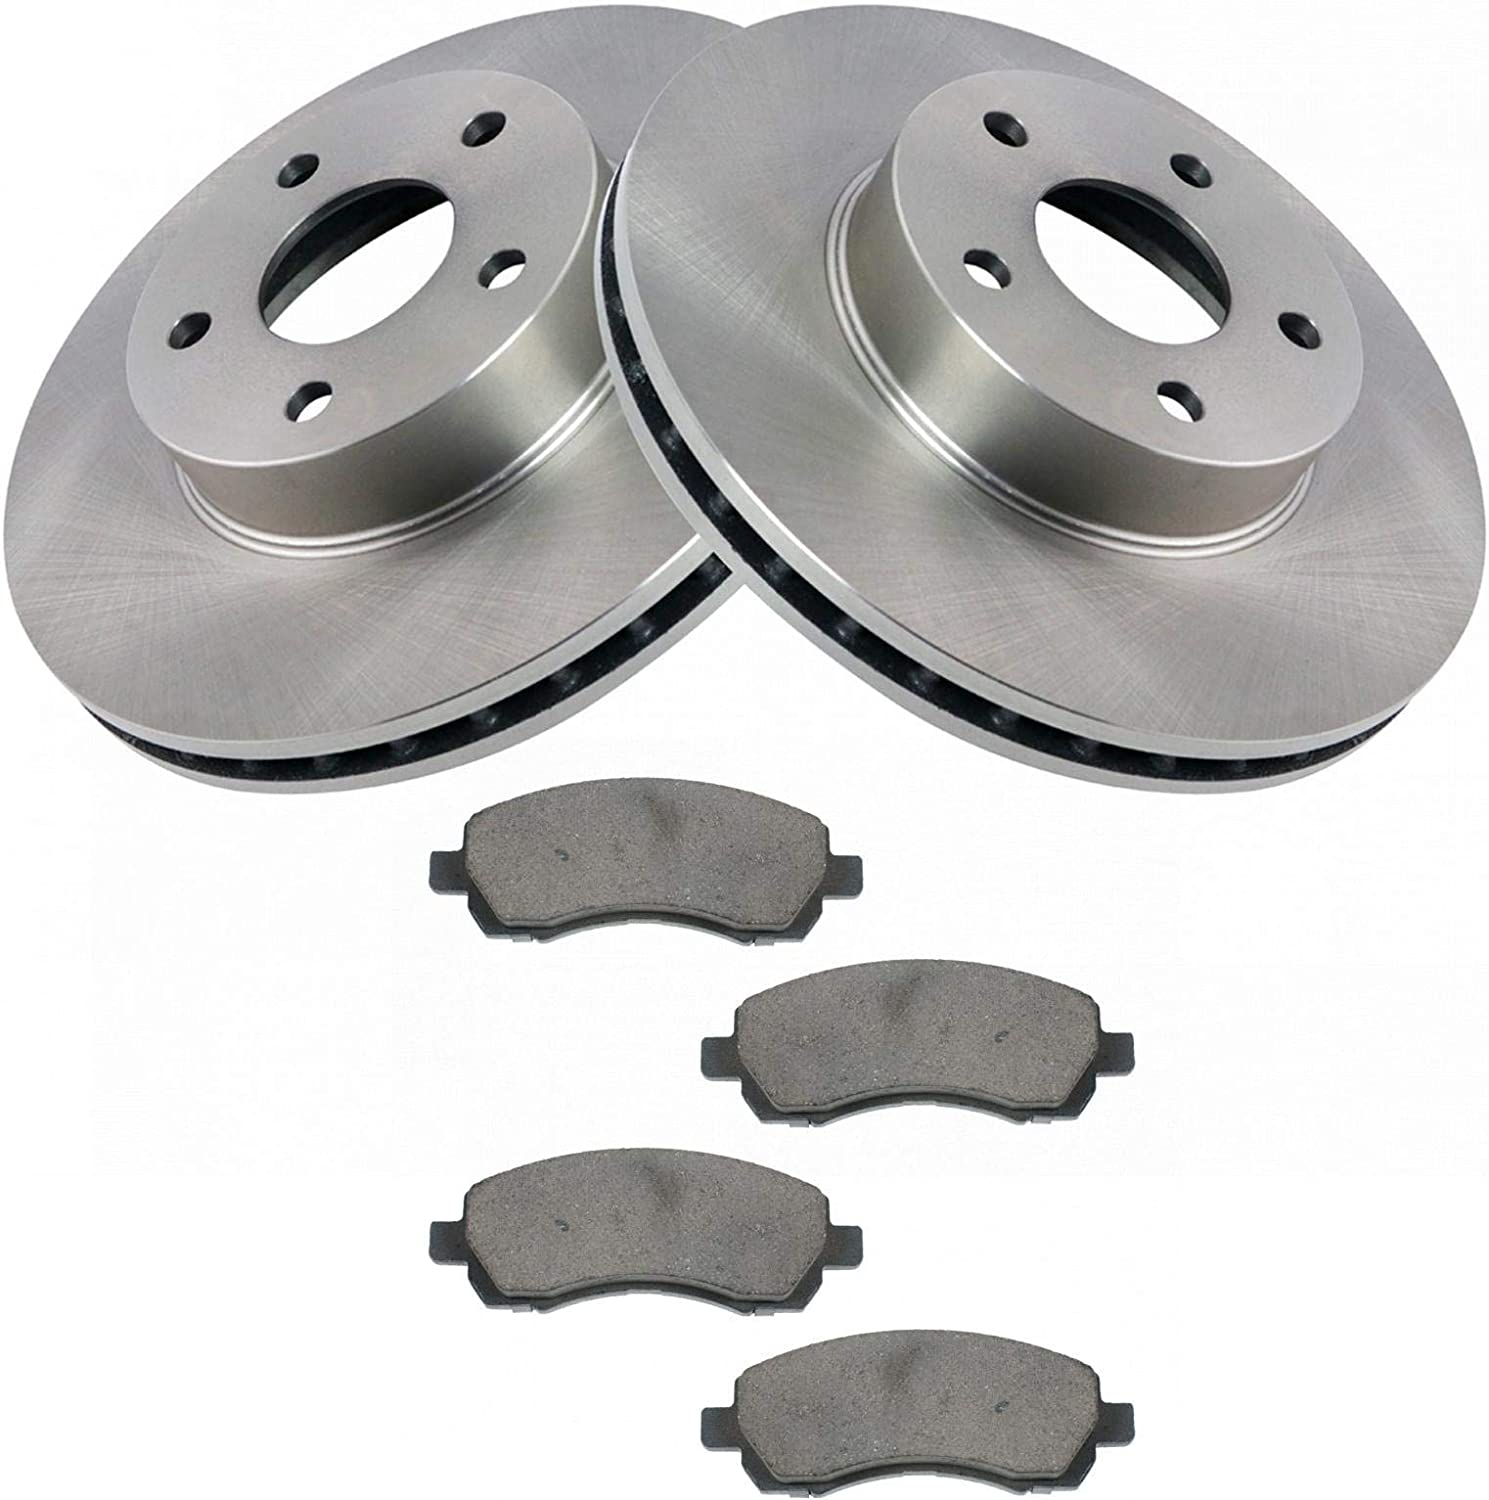 2000 2001 2002 For Subaru Impreza Rear Disc Brake Rotors and Ceramic Pads